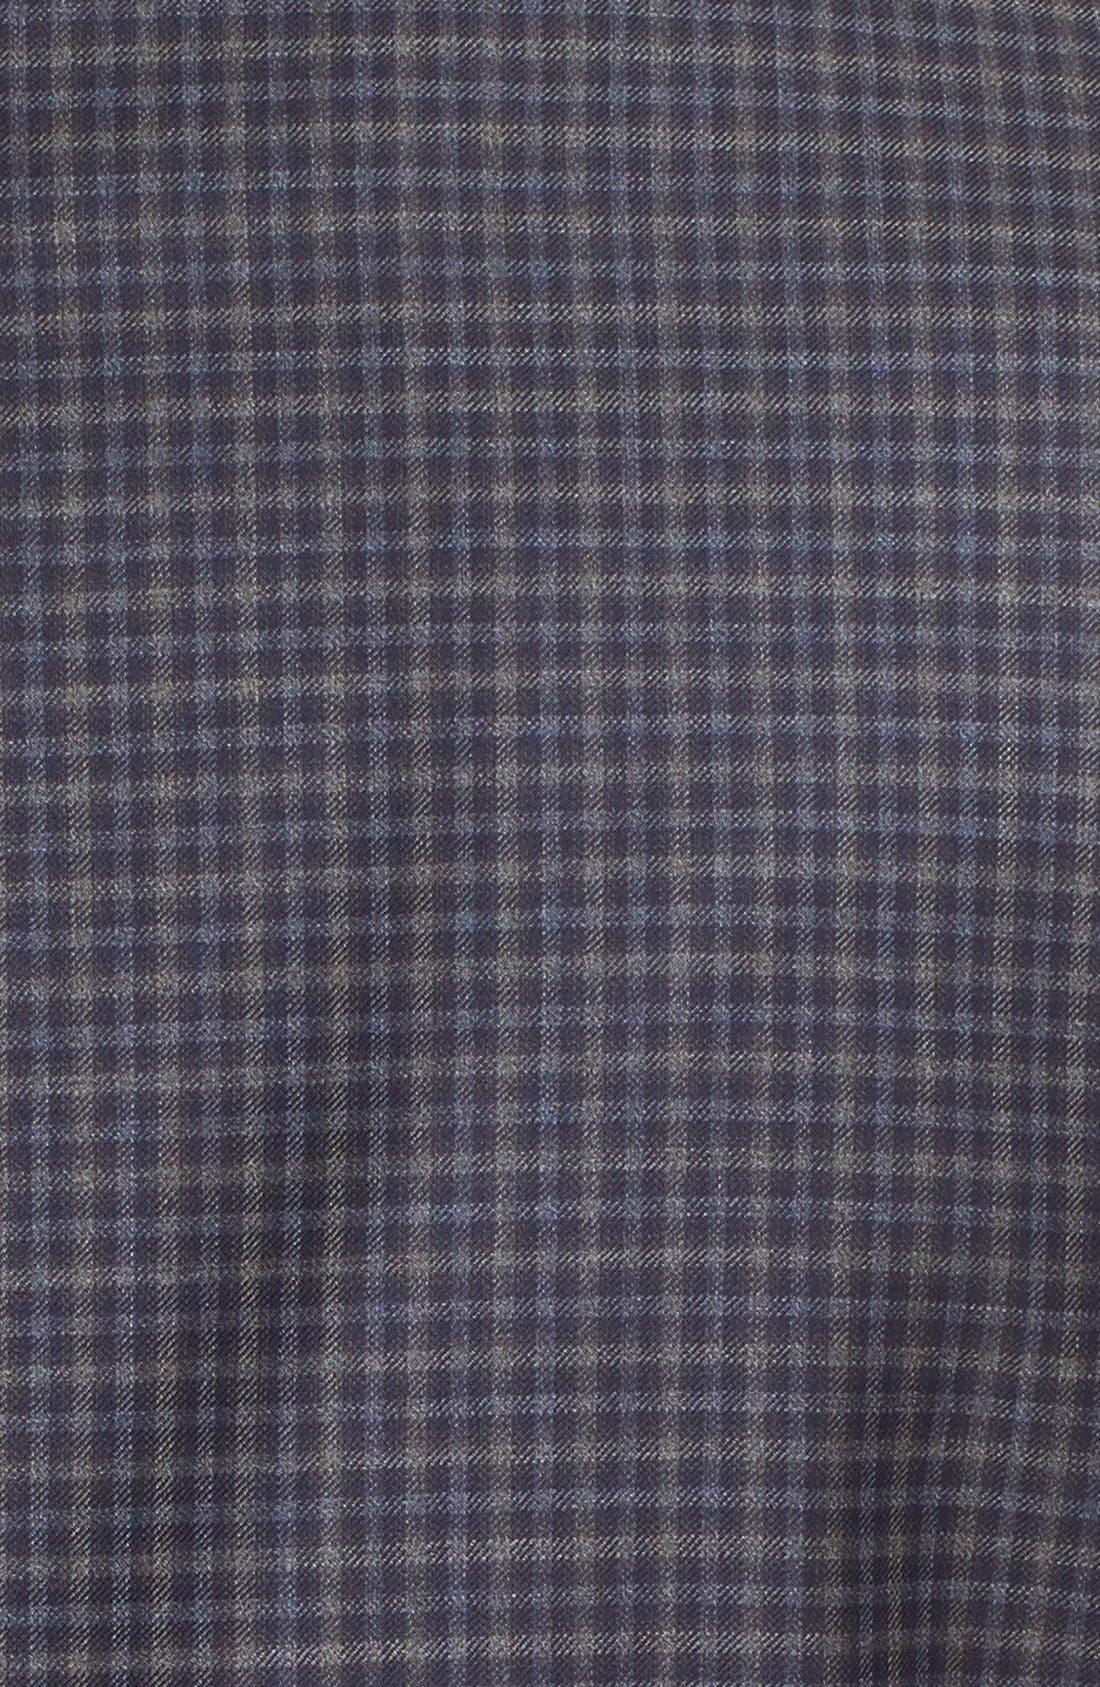 Classic Fit Check Wool Sport Coat,                             Alternate thumbnail 5, color,                             404